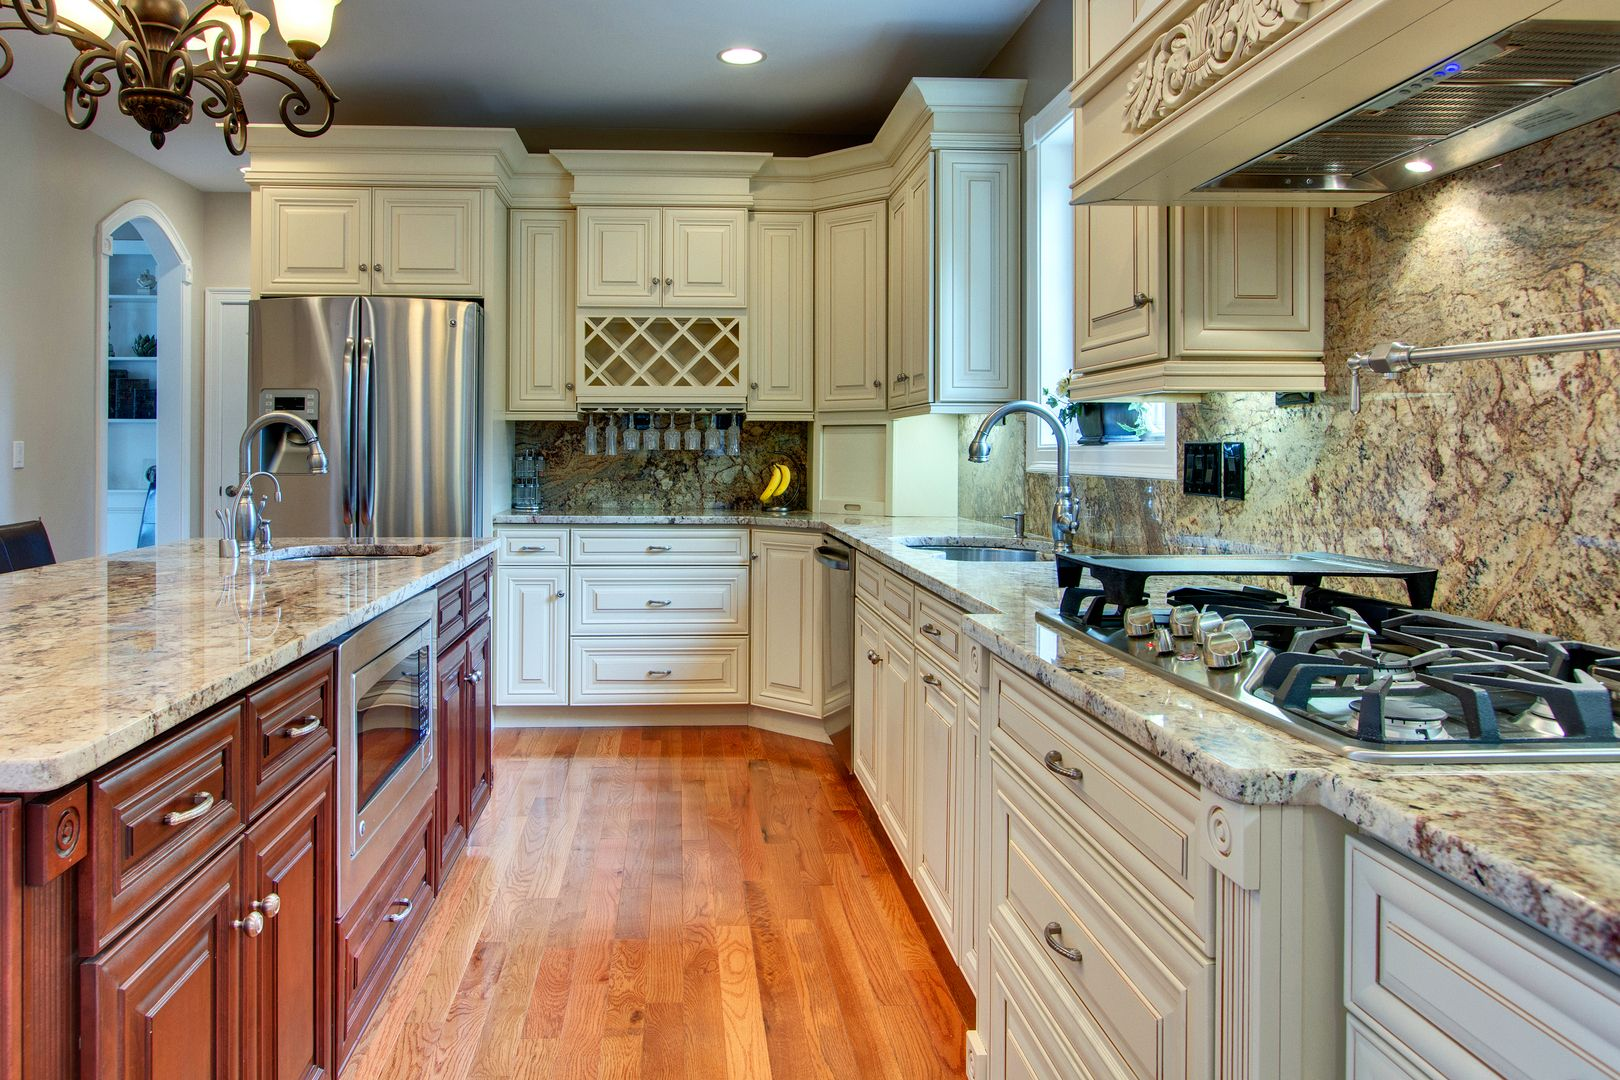 Cream Maple Glazed Kitchen Cabinets Pre Manufactured Cabinets Inexpensive Kit Wholesale Kitchen Cabinets Glazed Kitchen Cabinets Inexpensive Kitchen Cabinets